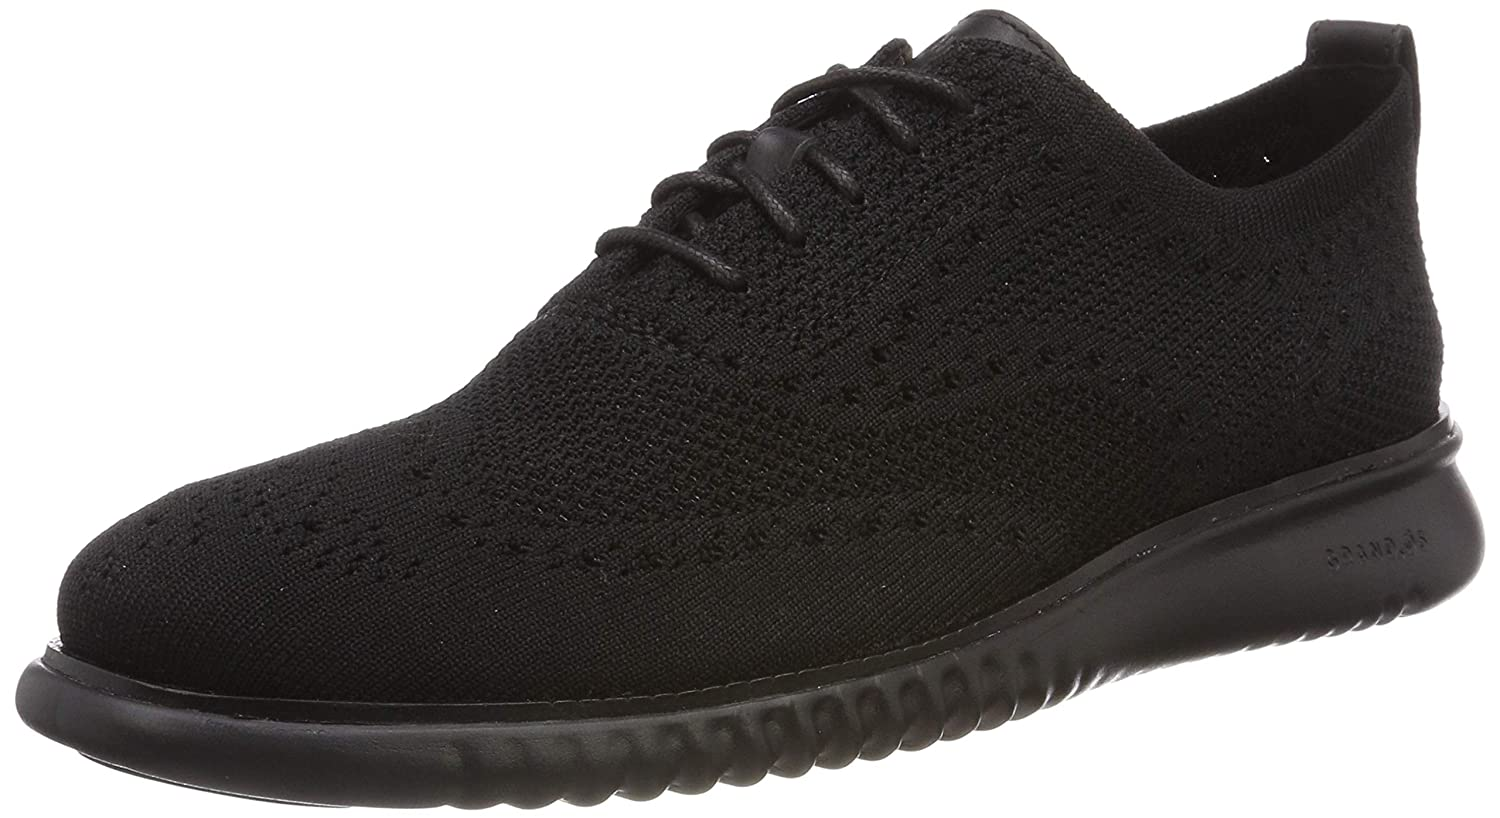 Black Black Cole Haan Men's 2.Zerogrand Stitchlite Sneakers